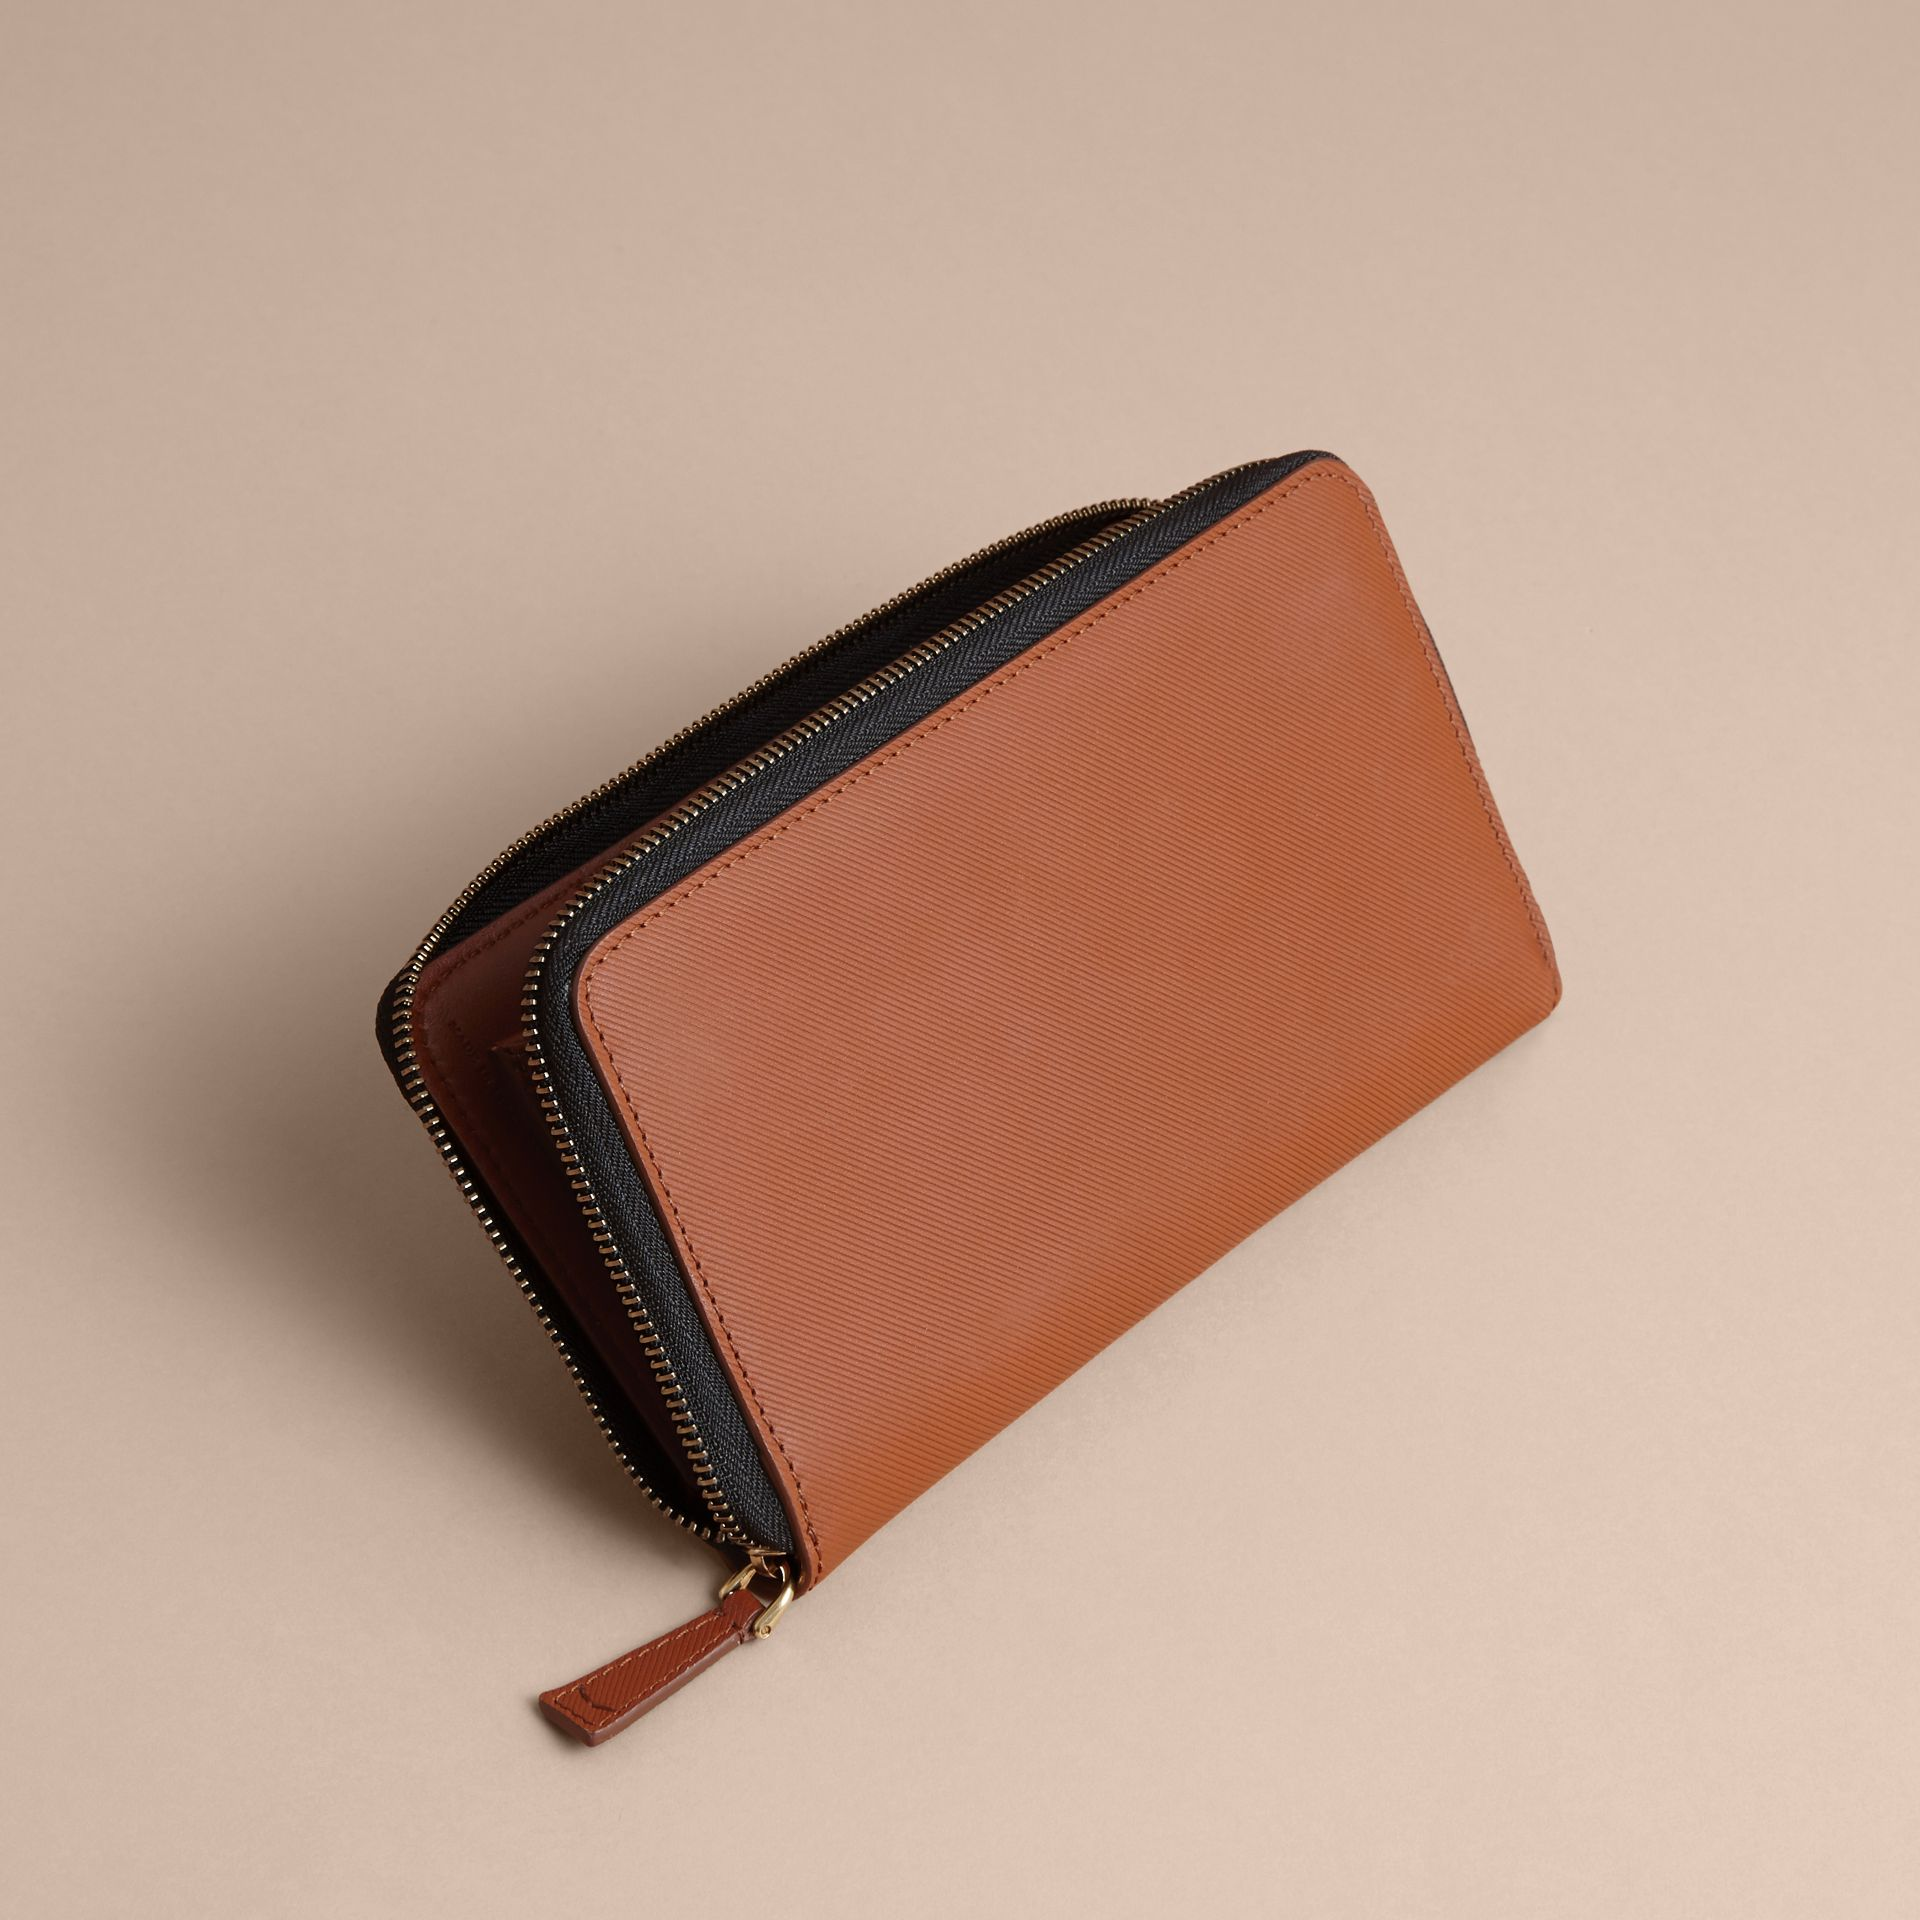 Trench Leather Ziparound Wallet in Tan - Men | Burberry Australia - gallery image 4